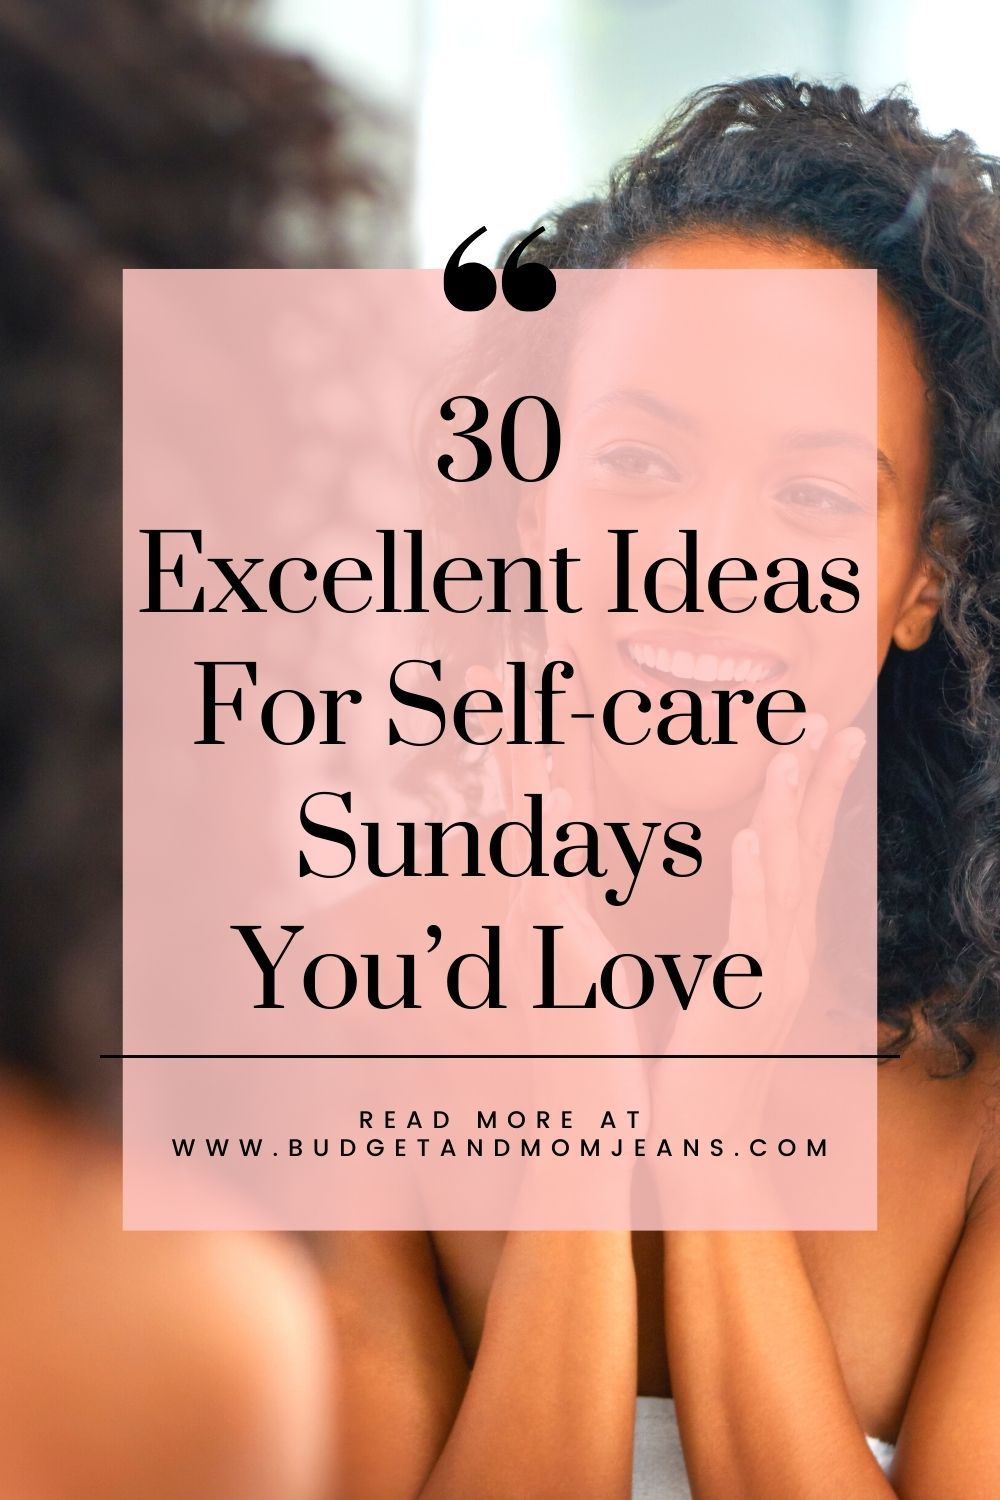 30 Excellent Ideas For Self-care Sundays You'd Love